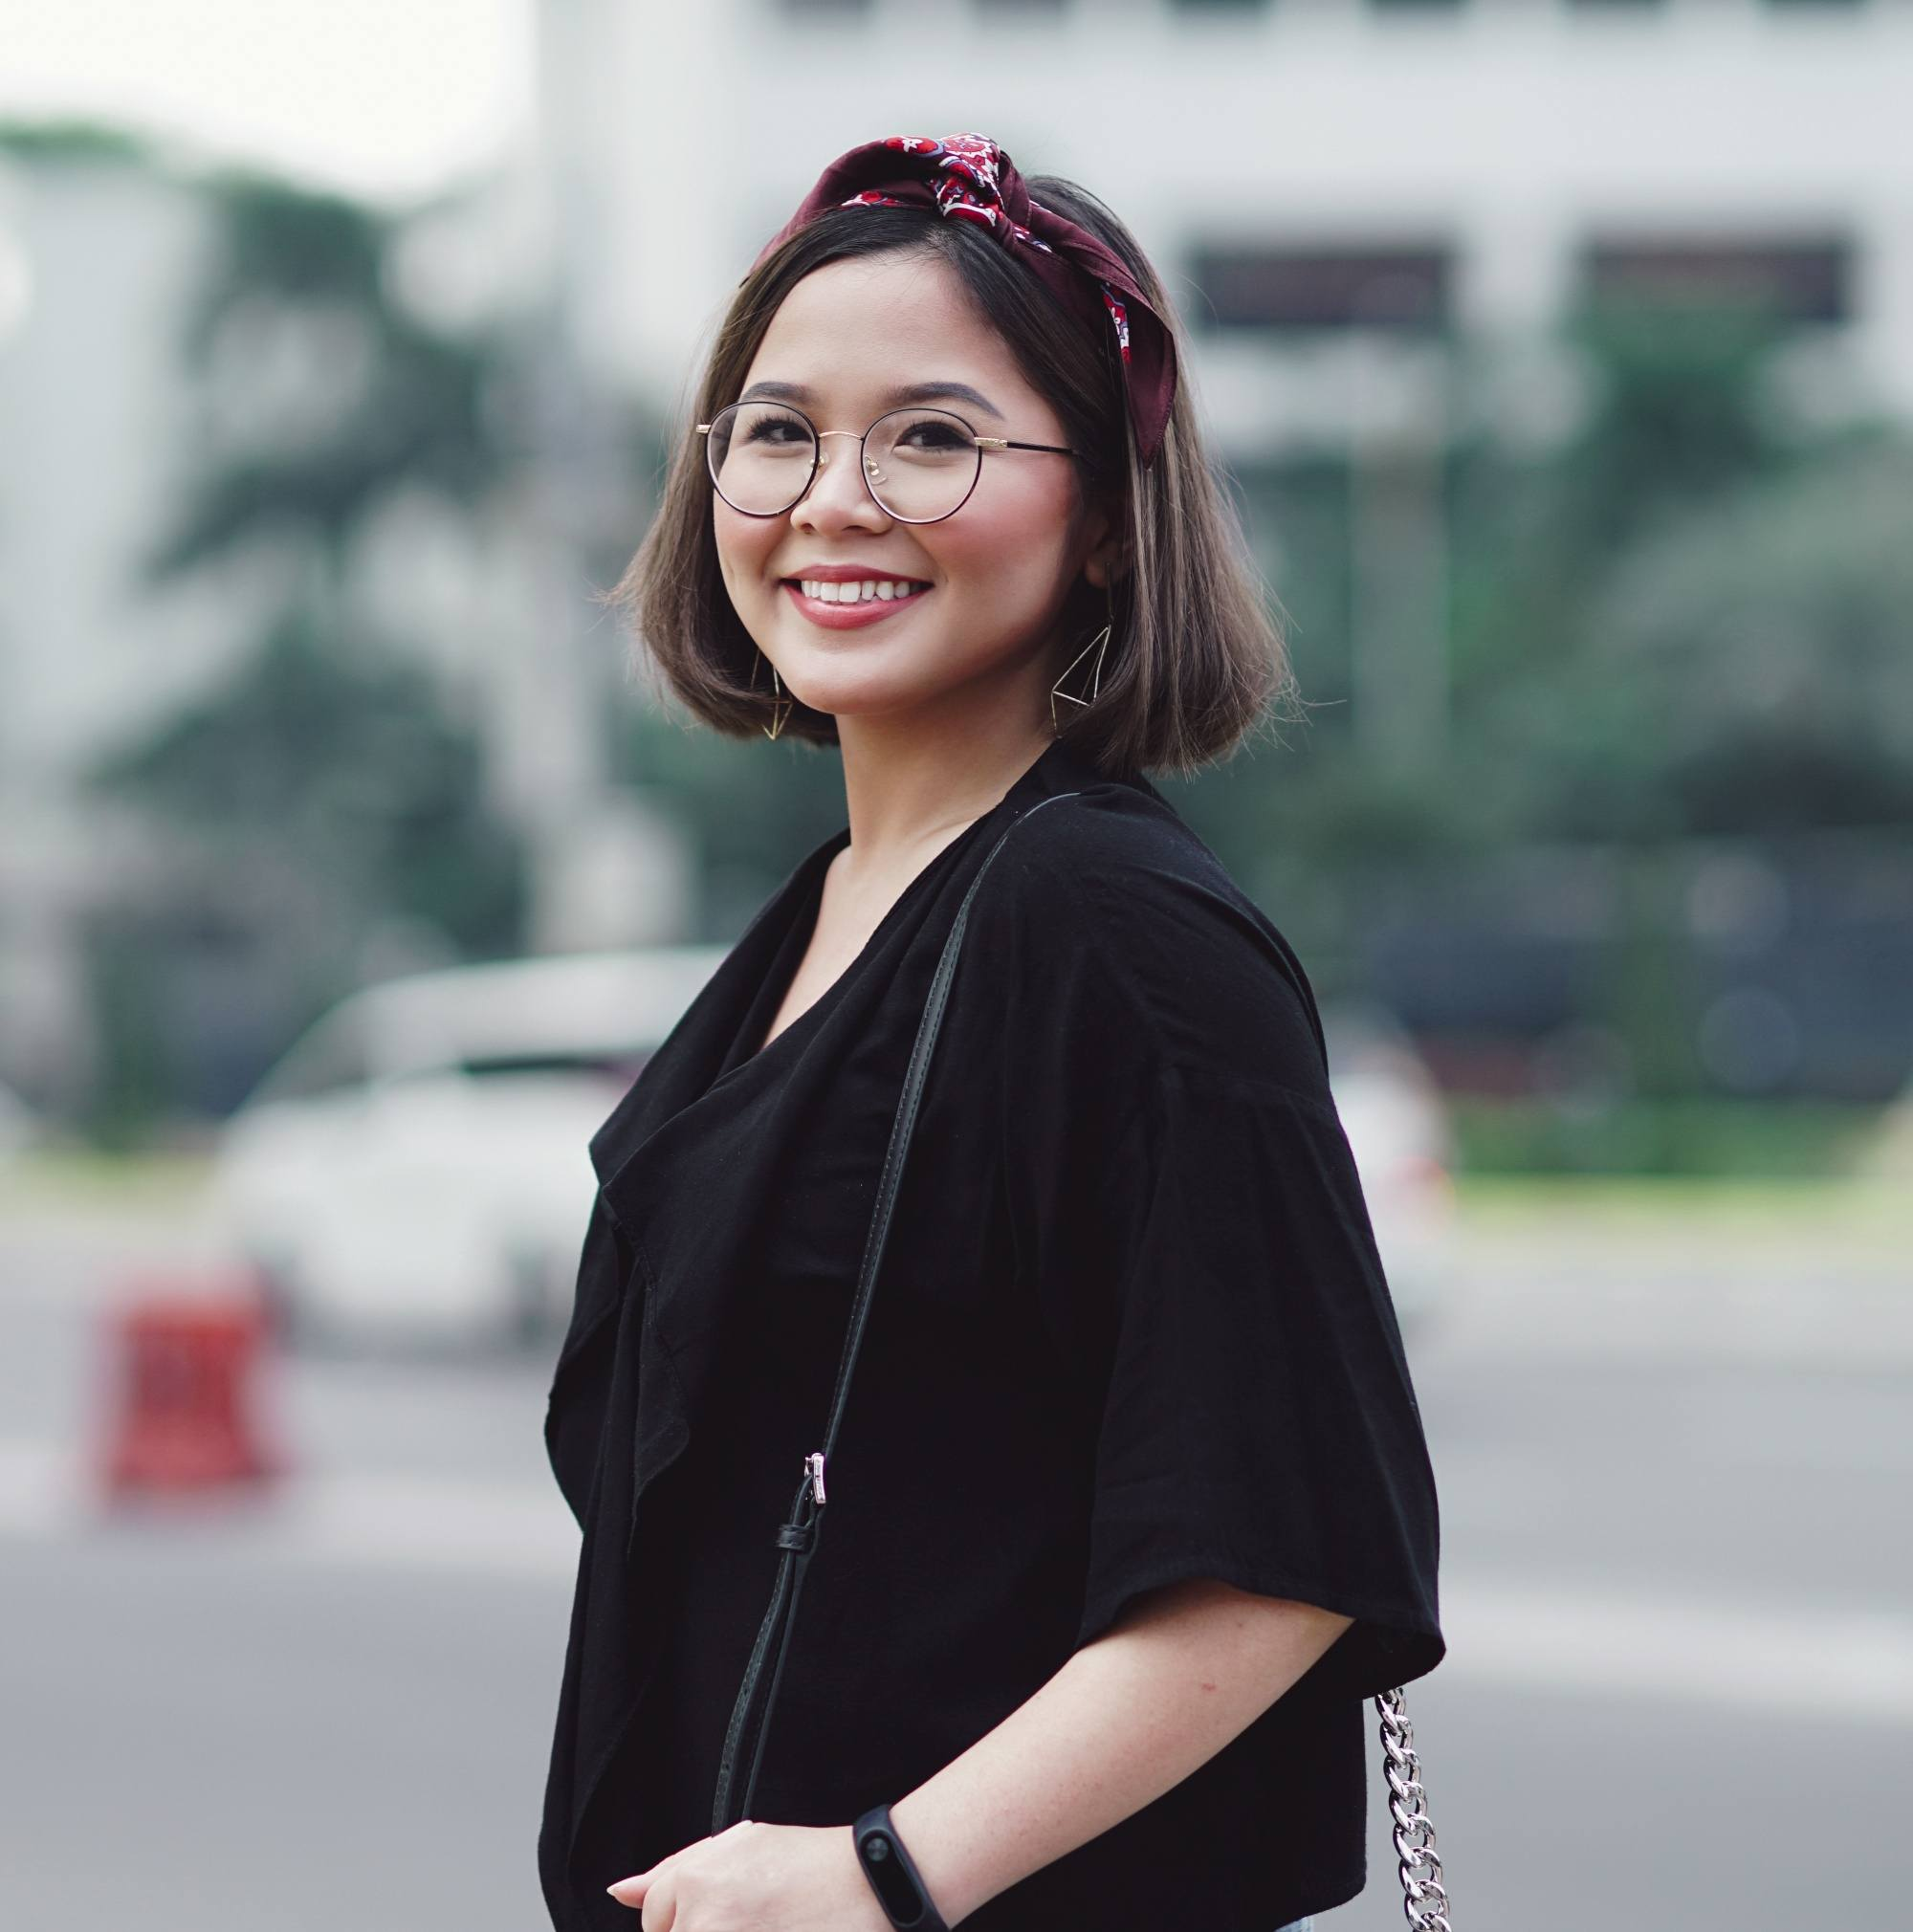 Chin length hairstyles: Asian woman with short dark hair with headband wearing eyeglasses and a black shirt